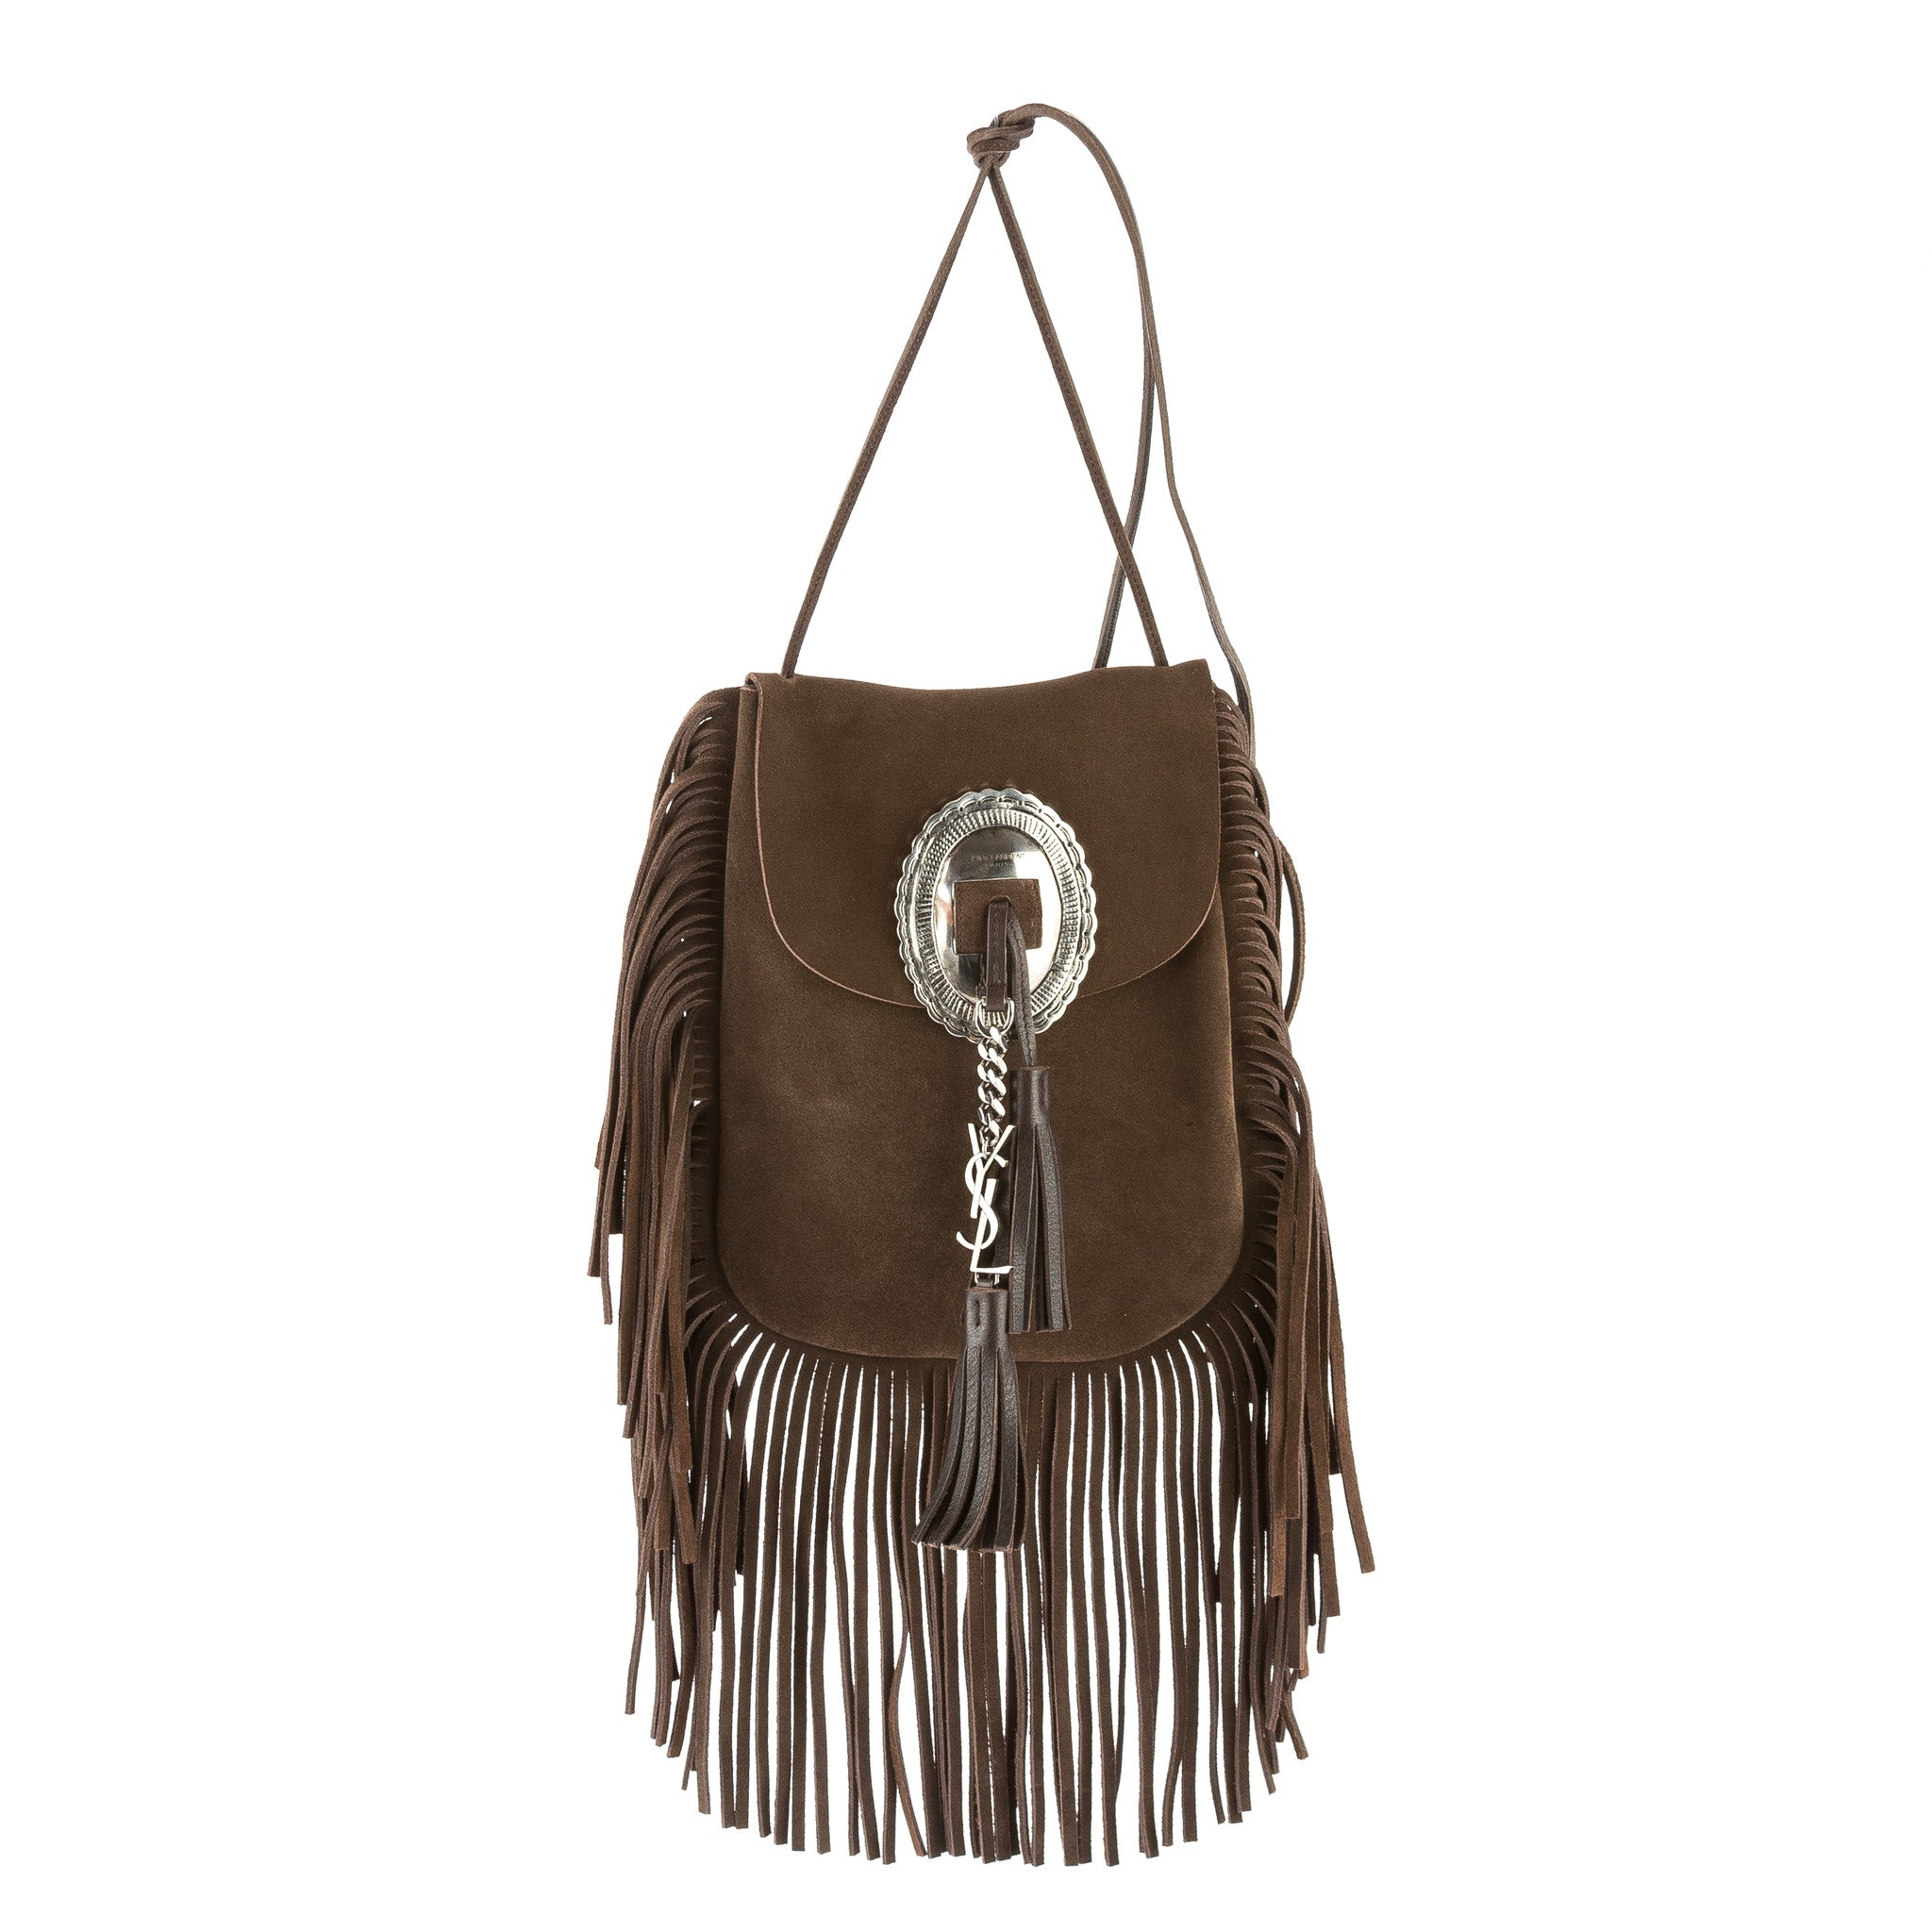 e286577199 Yves Saint Laurent Saint Laurent Brown Suede Anita Flat Fringed Crossbody  Bag New with Tags